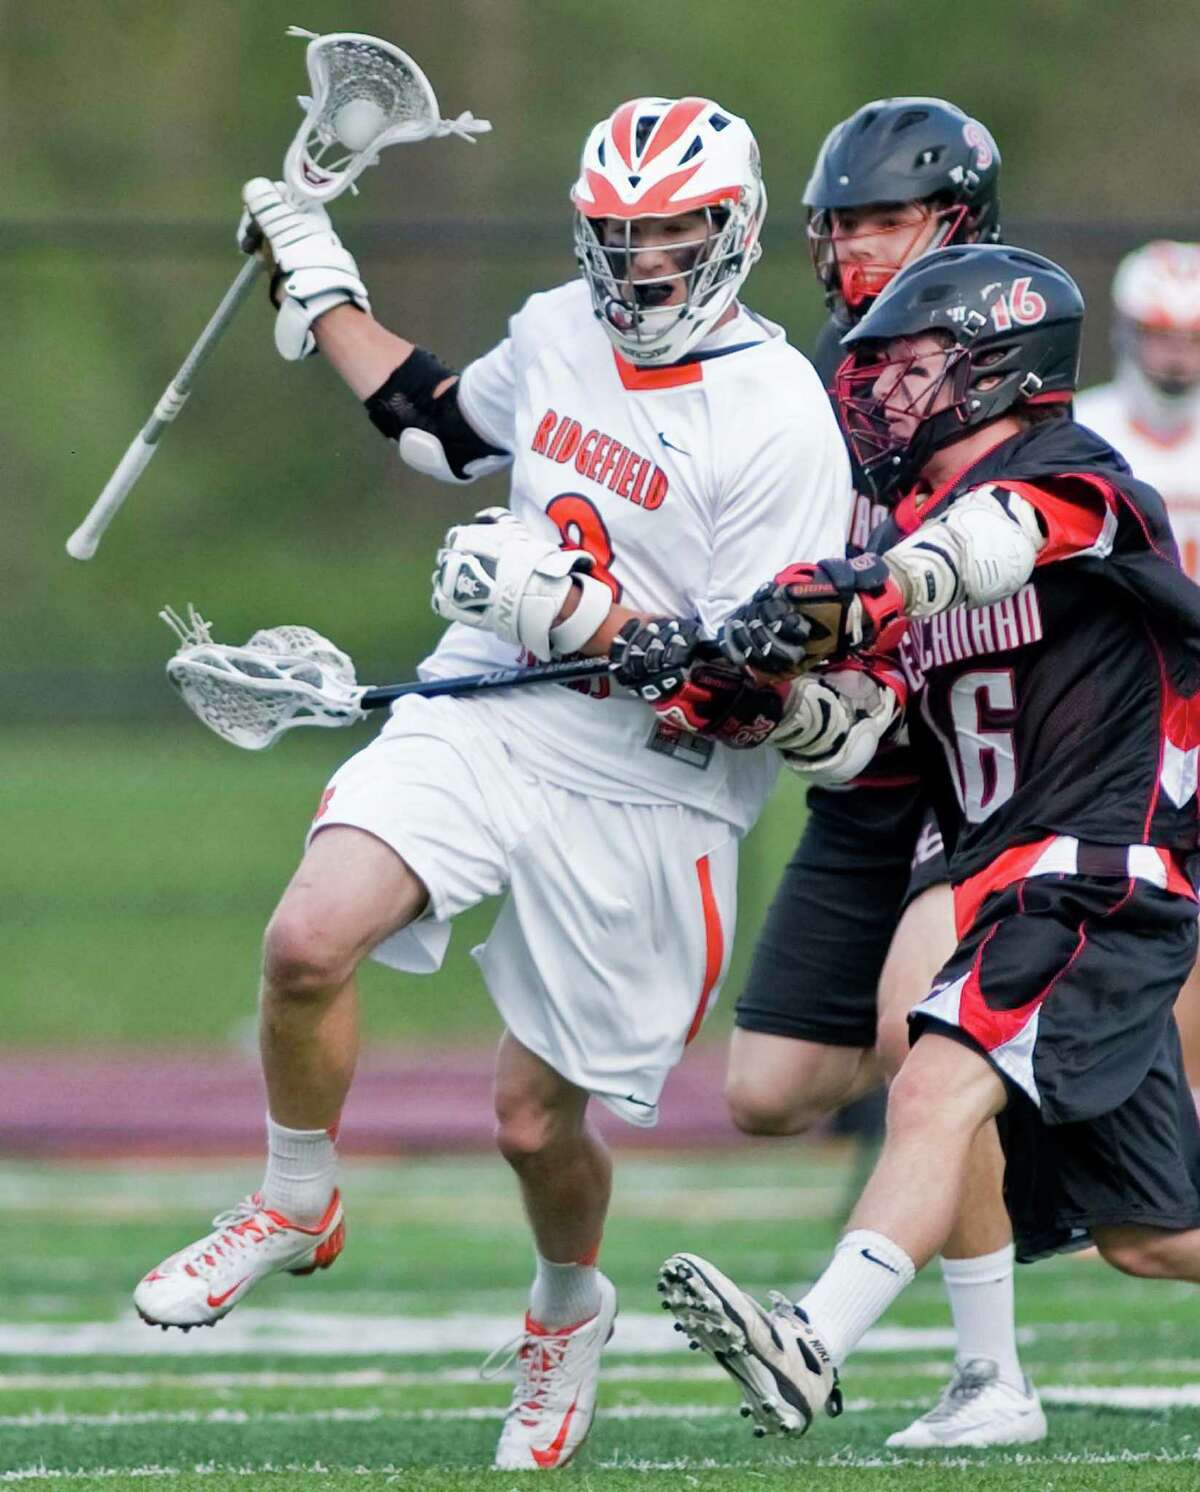 Ridgefield High School's Tim Cozens tries to get by New Canaan High School's Henry Stanton during a game against , played at Ridgefield. Thursday, May 9, 2013